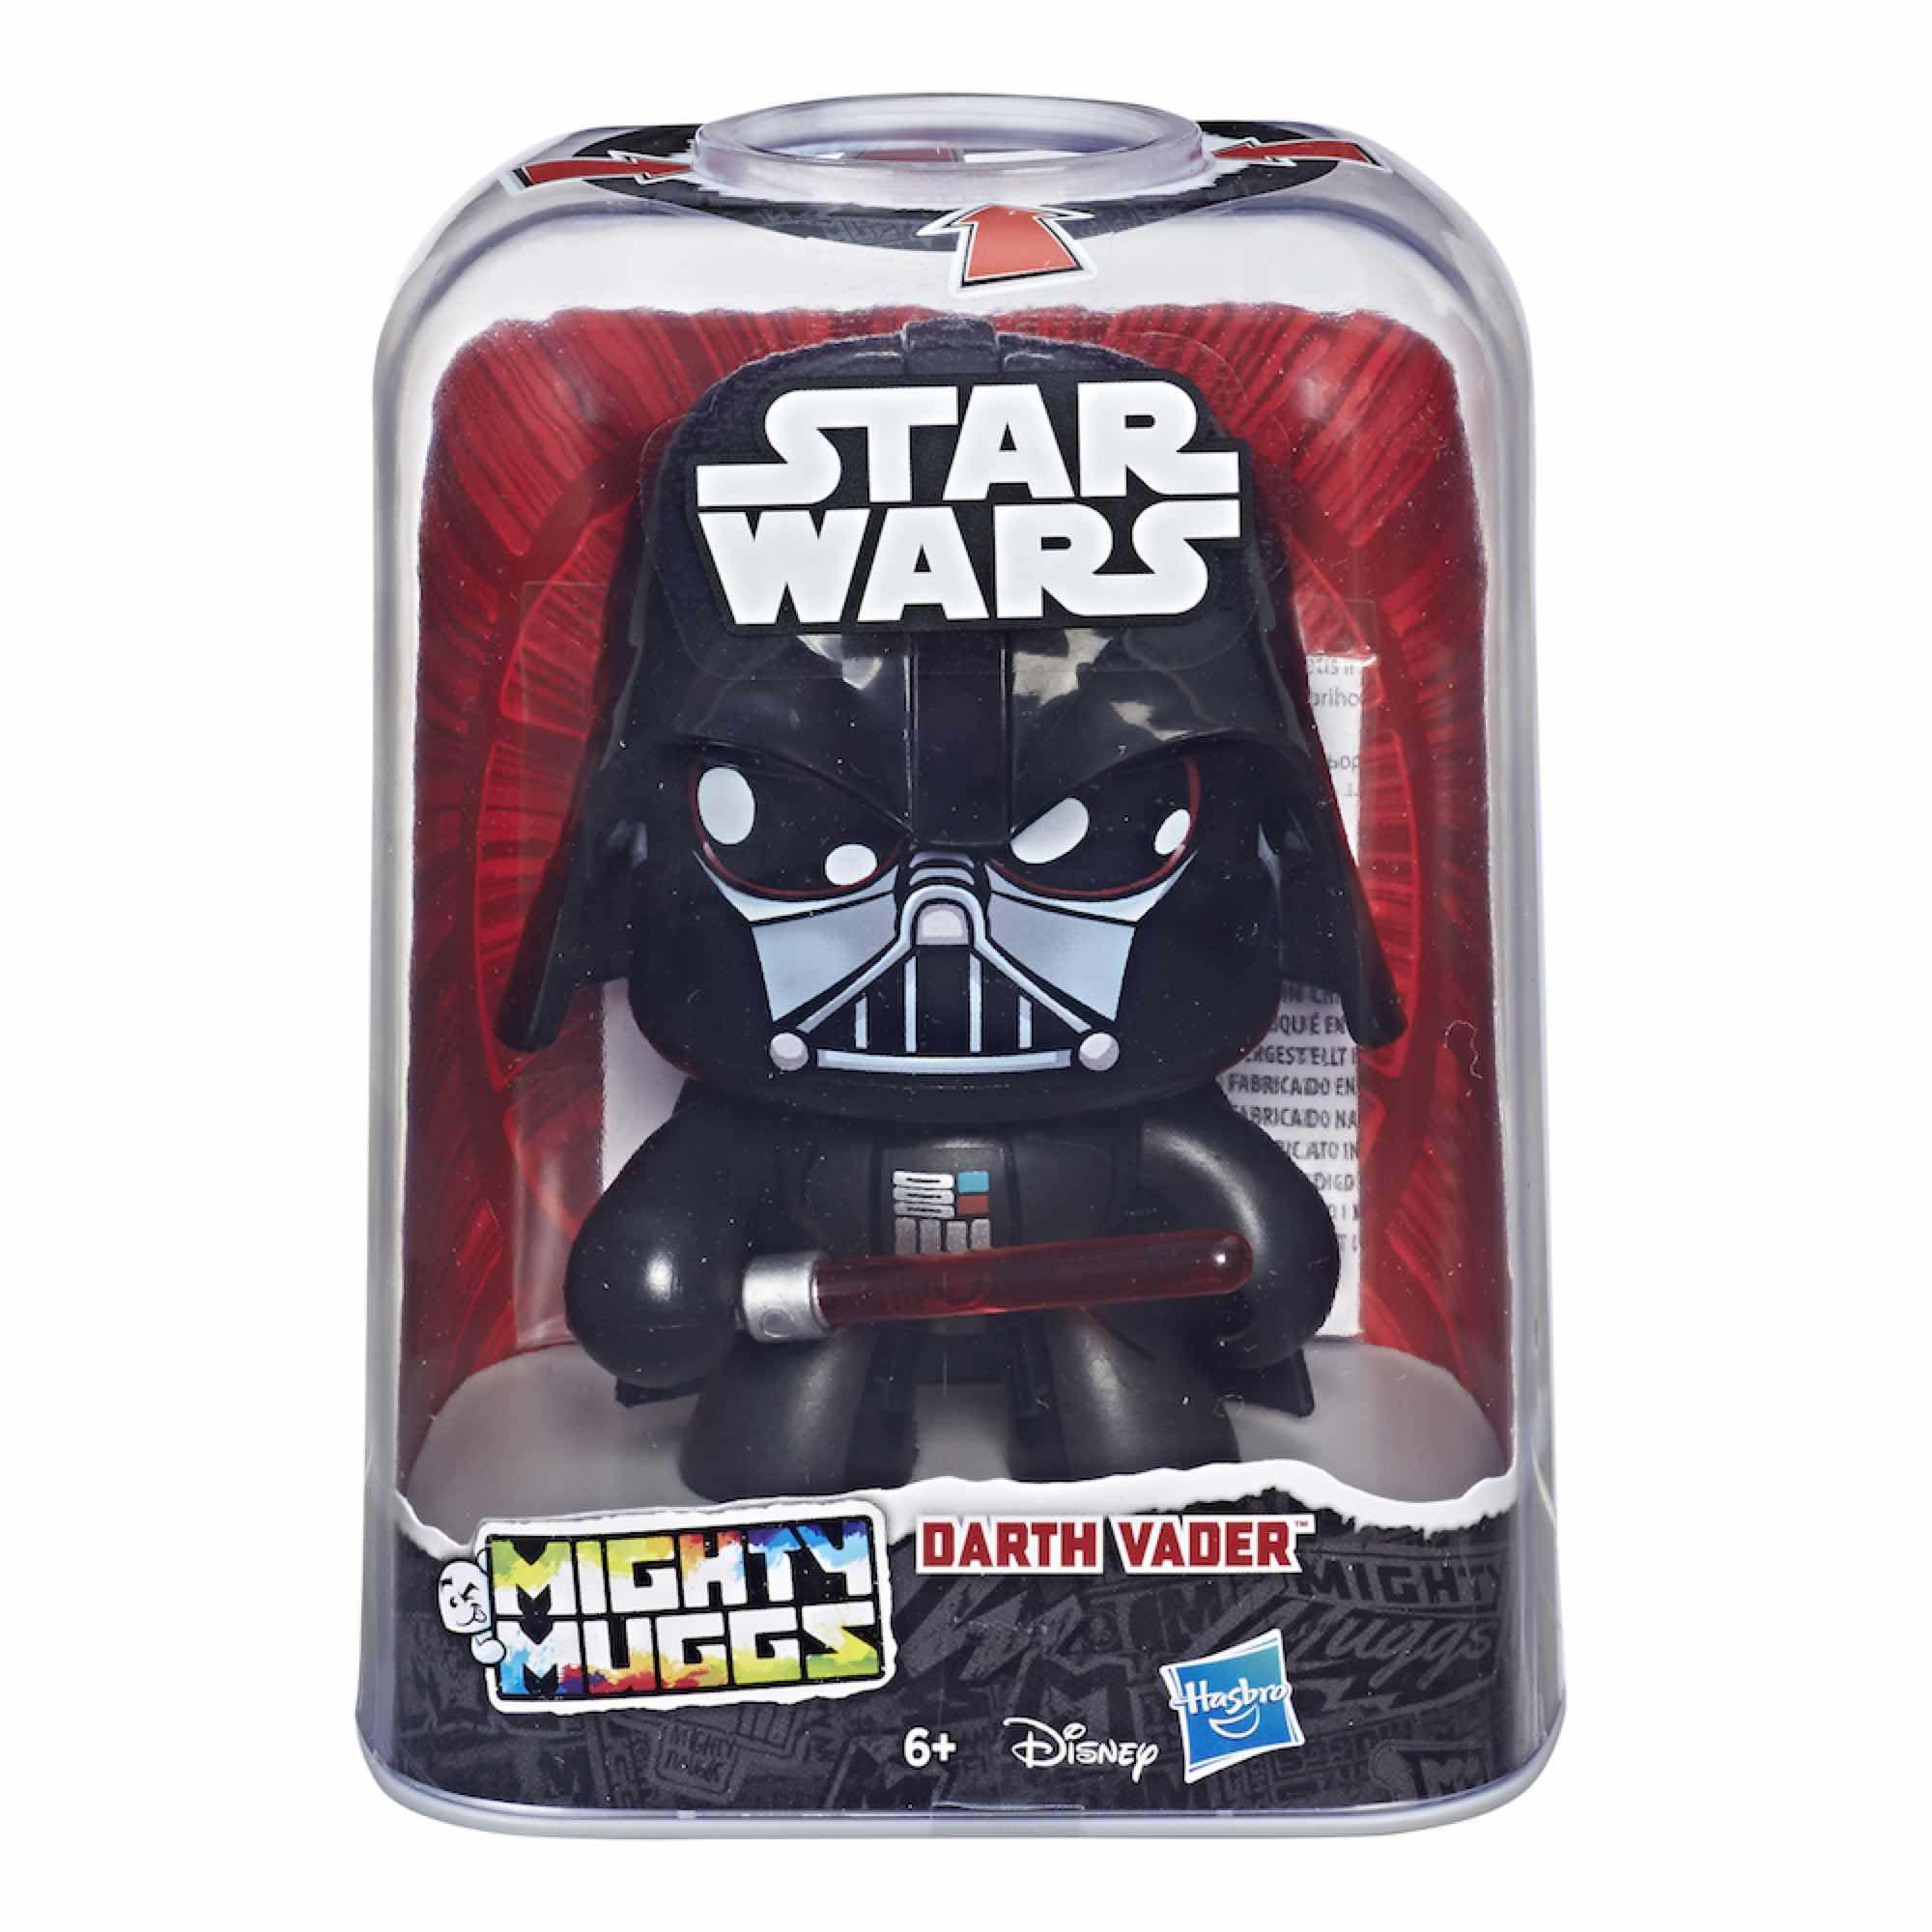 Mighty Muggs Star Wars Darth Vader Hasbro